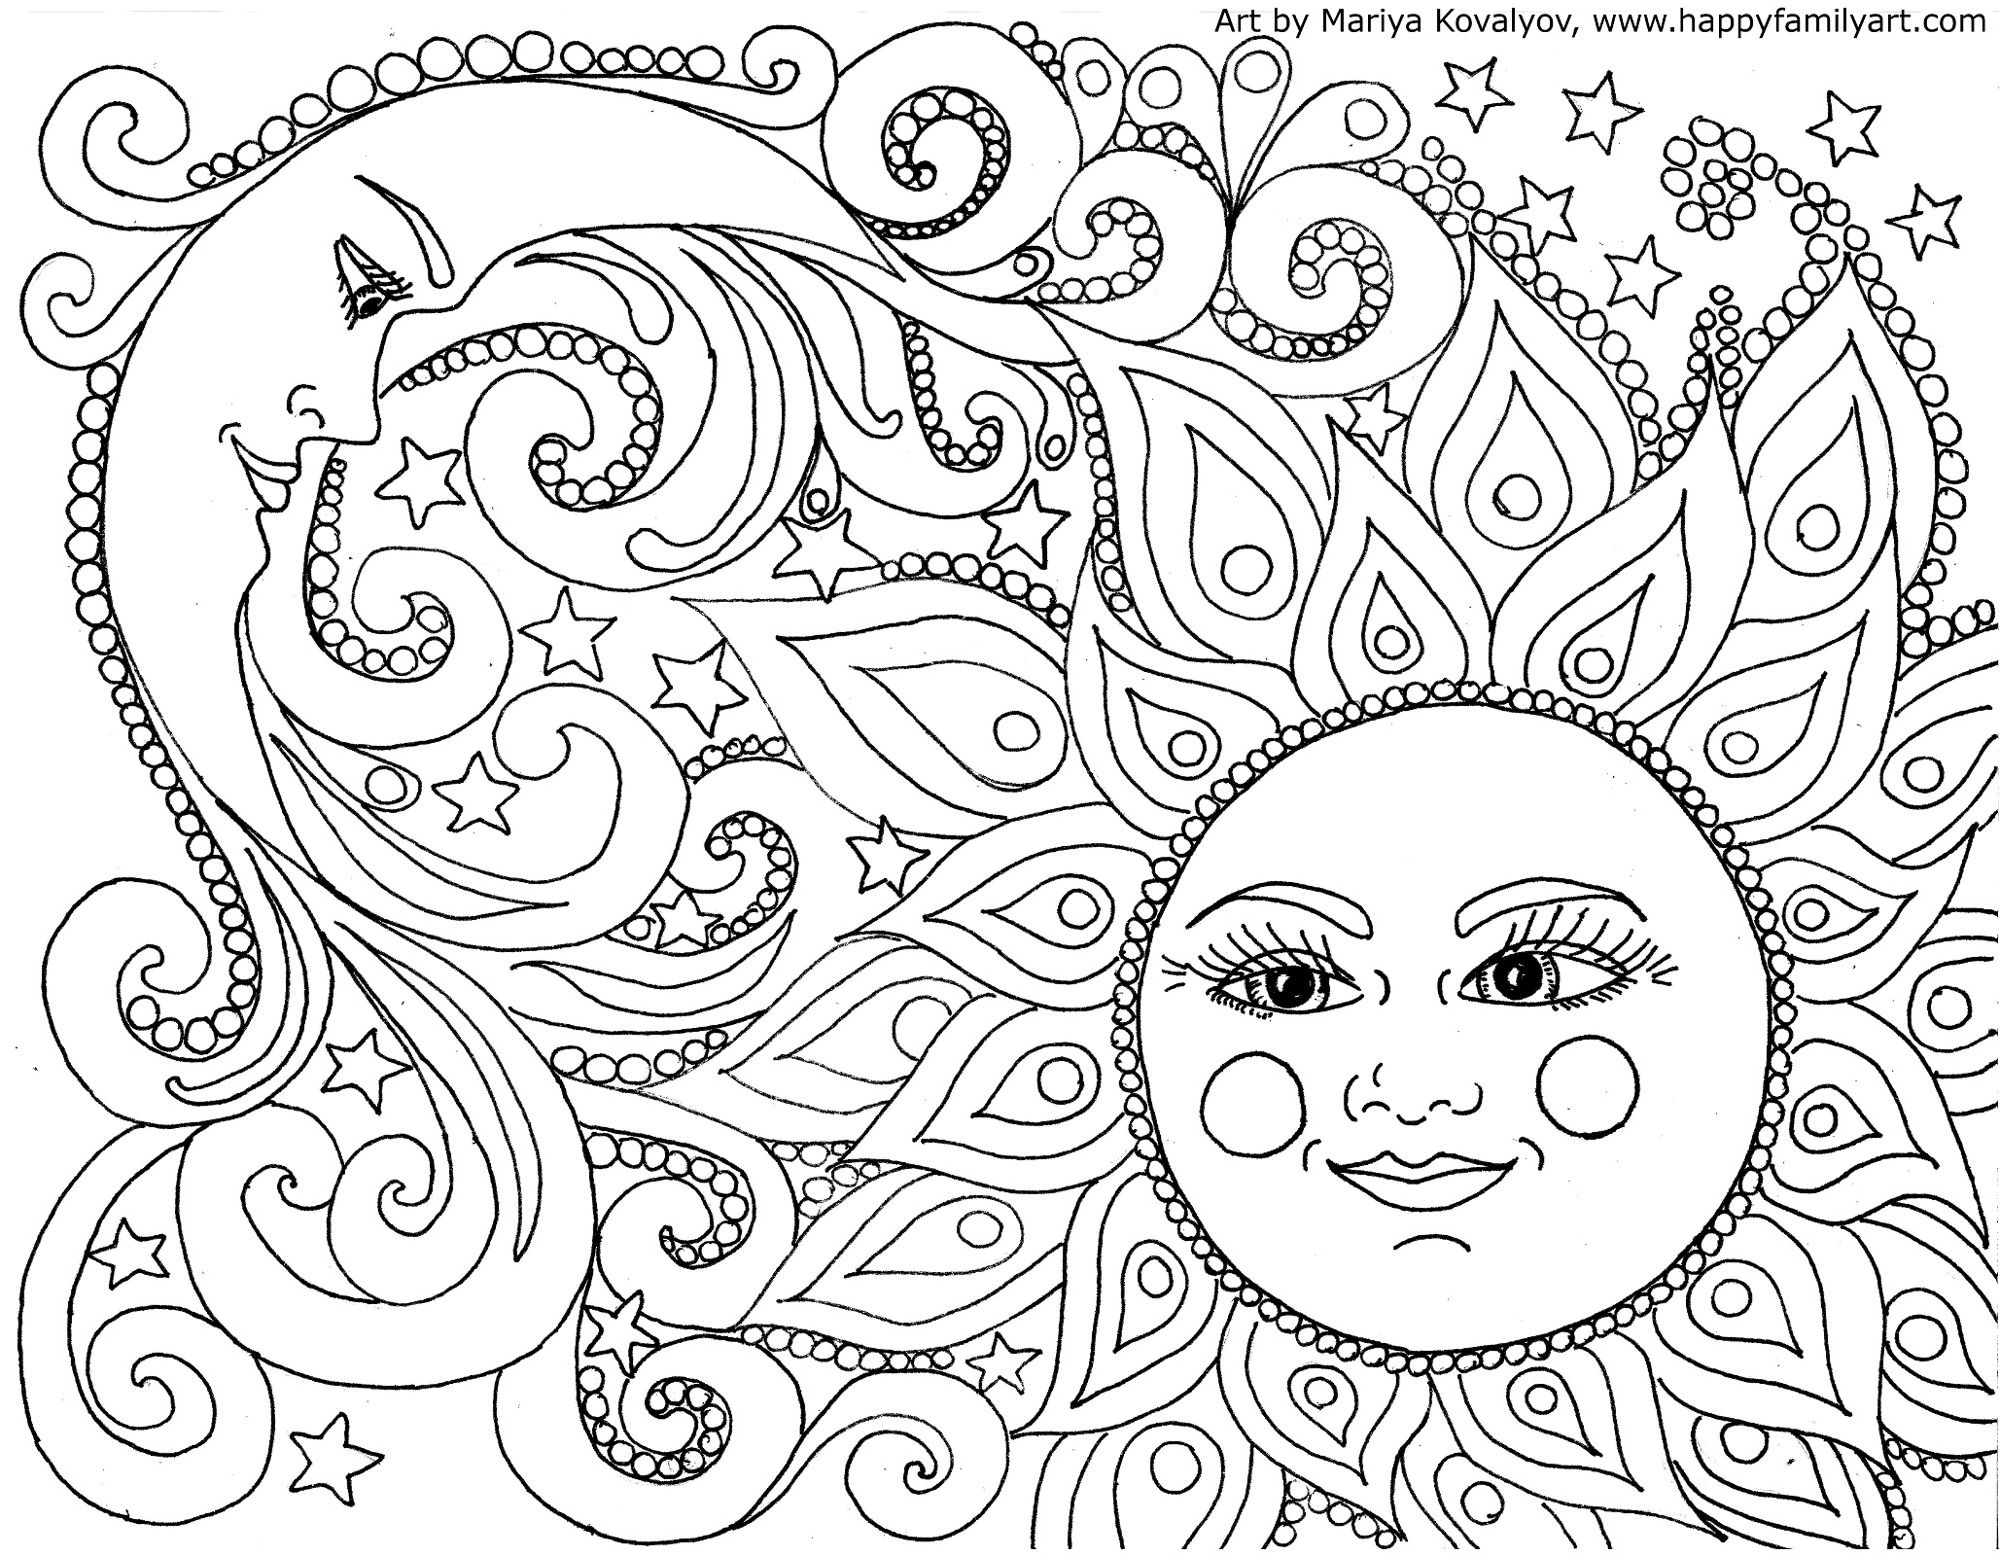 Happy Family Art - original and fun coloring pages  Moon coloring